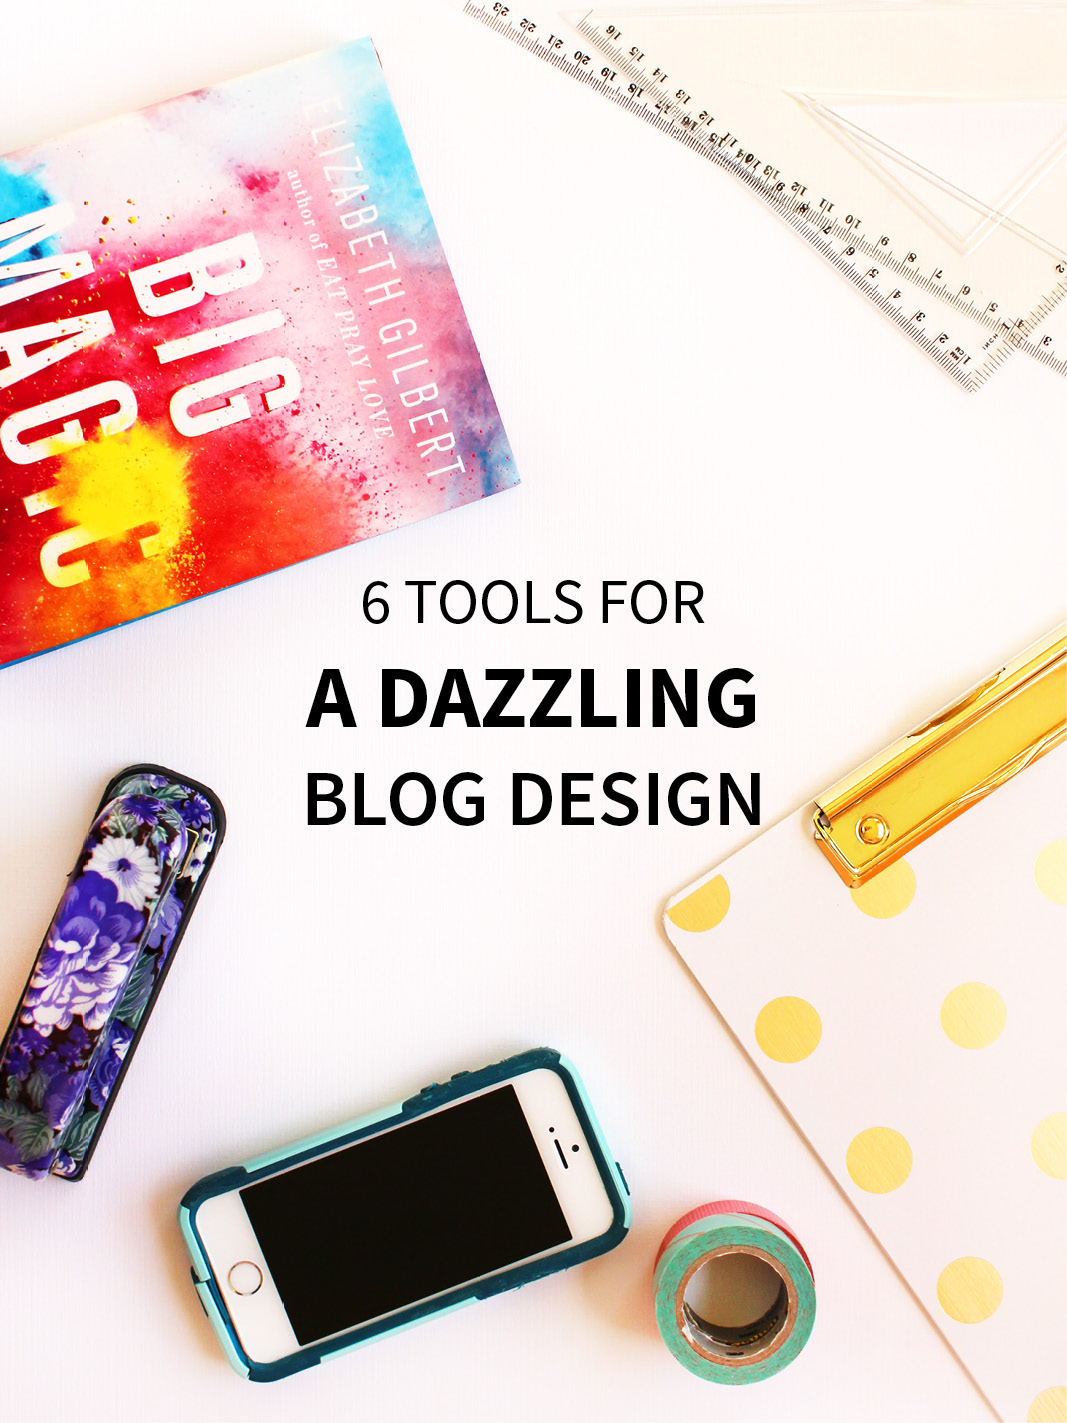 6 Tools for a Dazzling Blog Design